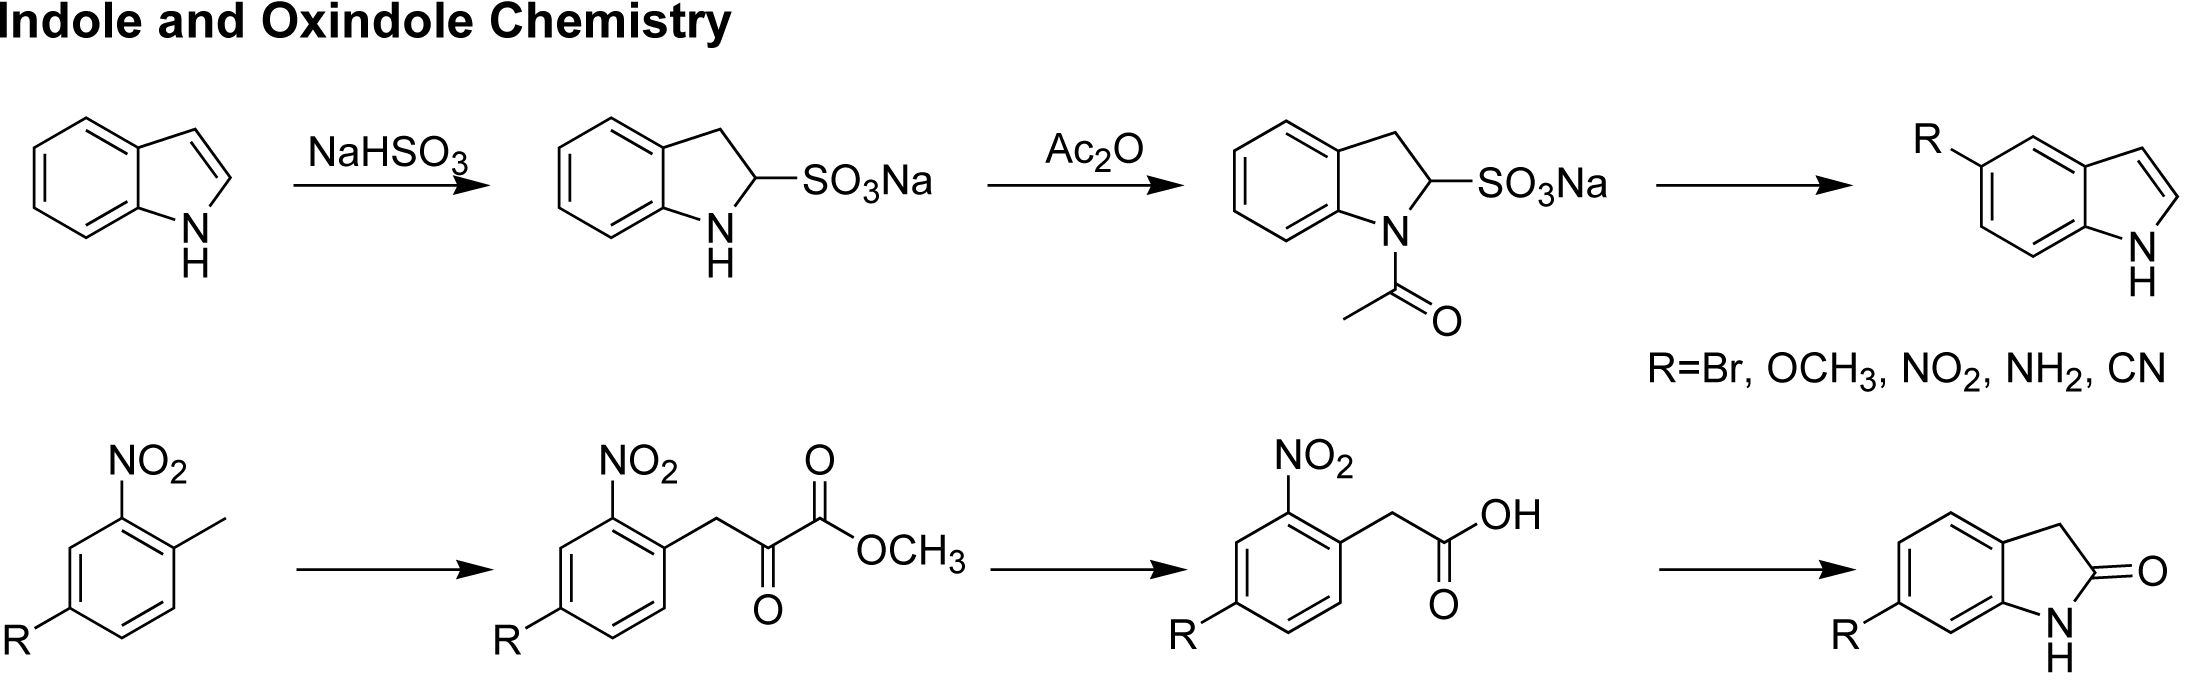 Indole_and_Oxindole_Chemistry_Version_5.png